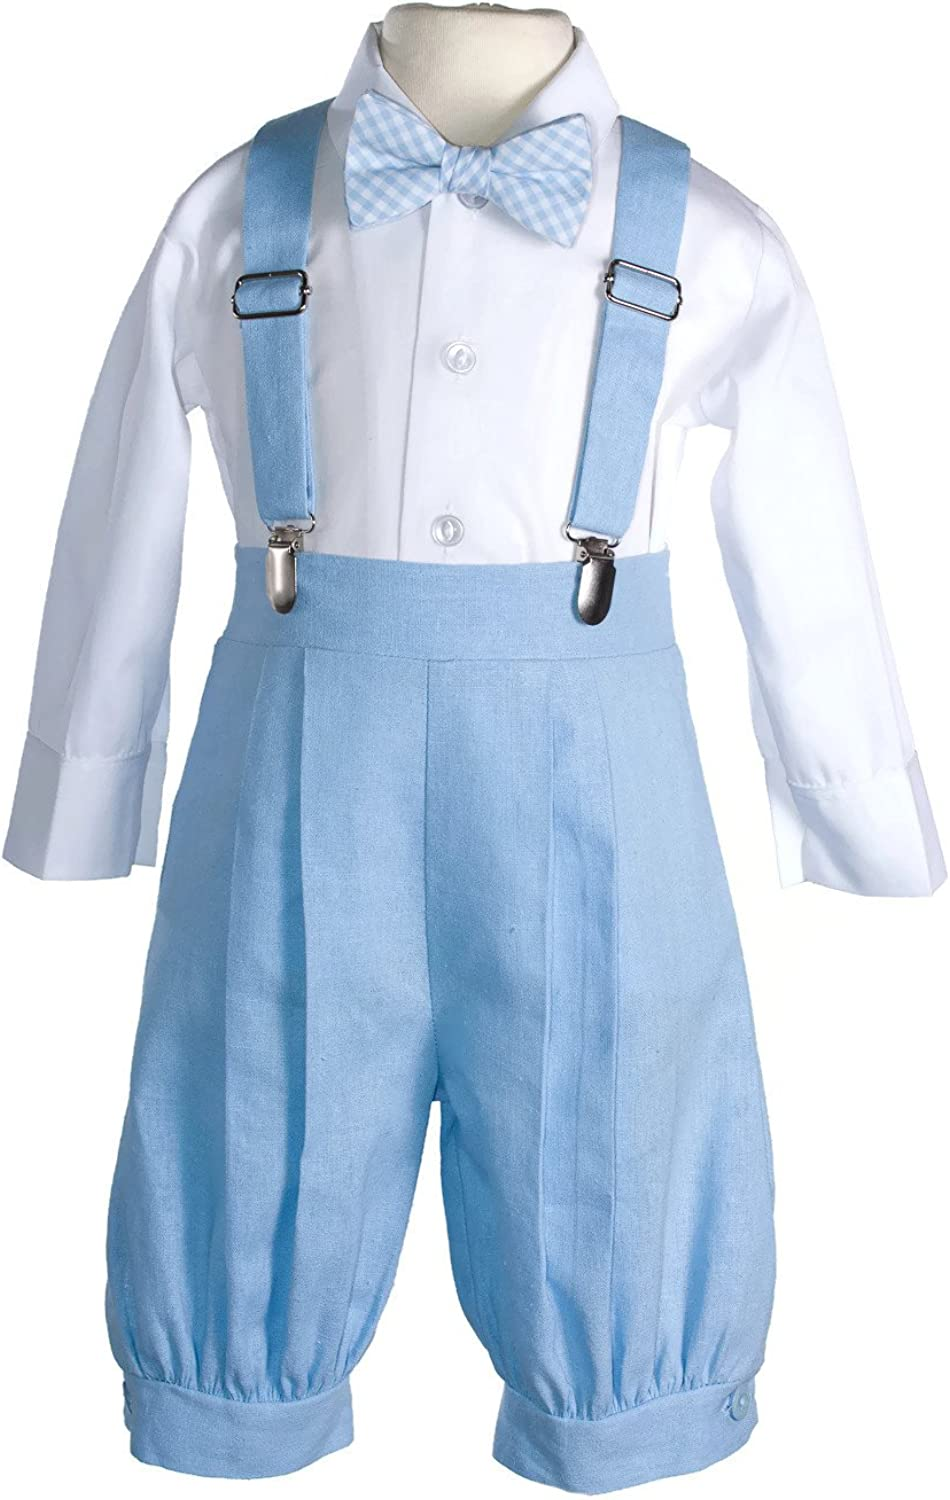 Tuxgear Boys Linen Vintage Knicker Outfit with Suspenders and Hat